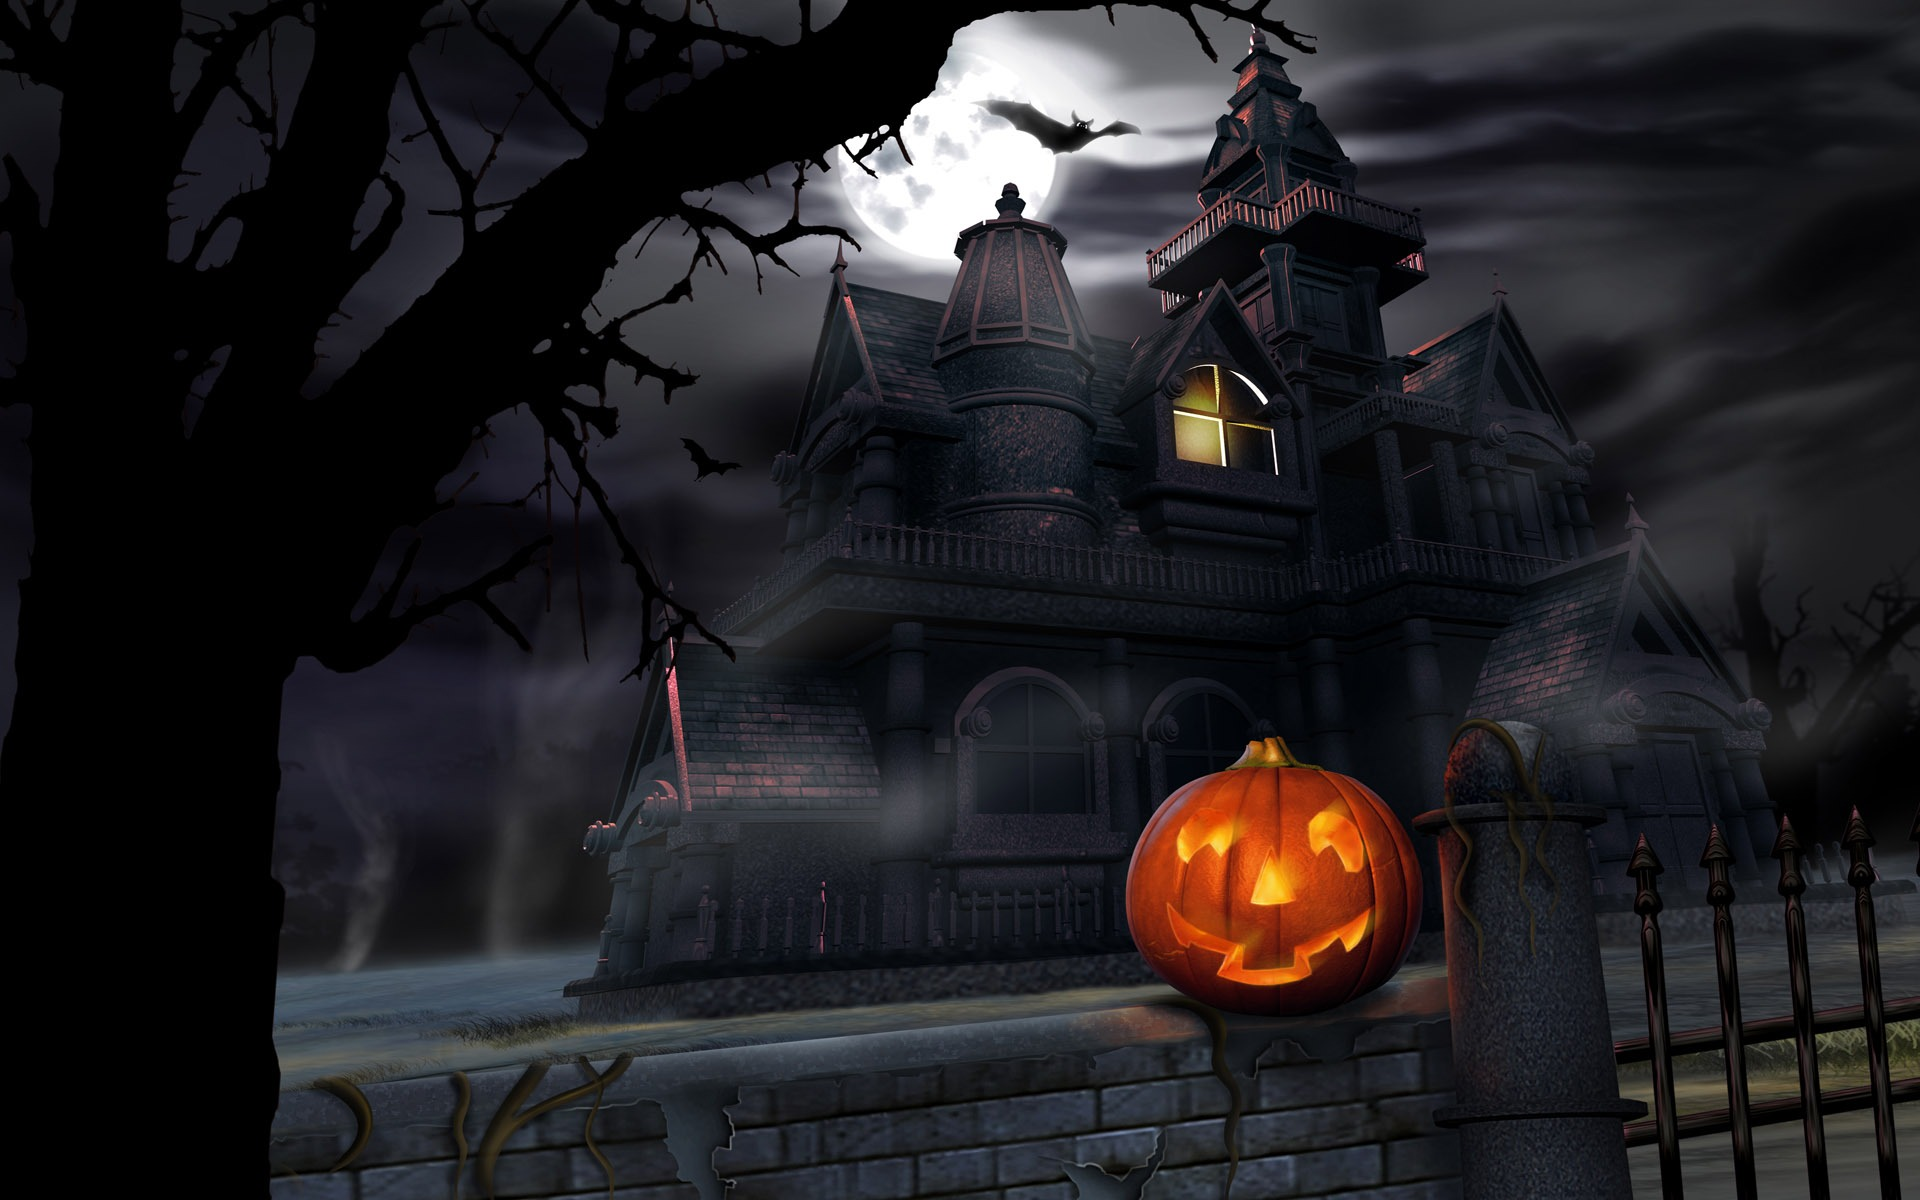 halloween theme wallpapers 4 3 1920x1200 - Halloween Themed Pictures